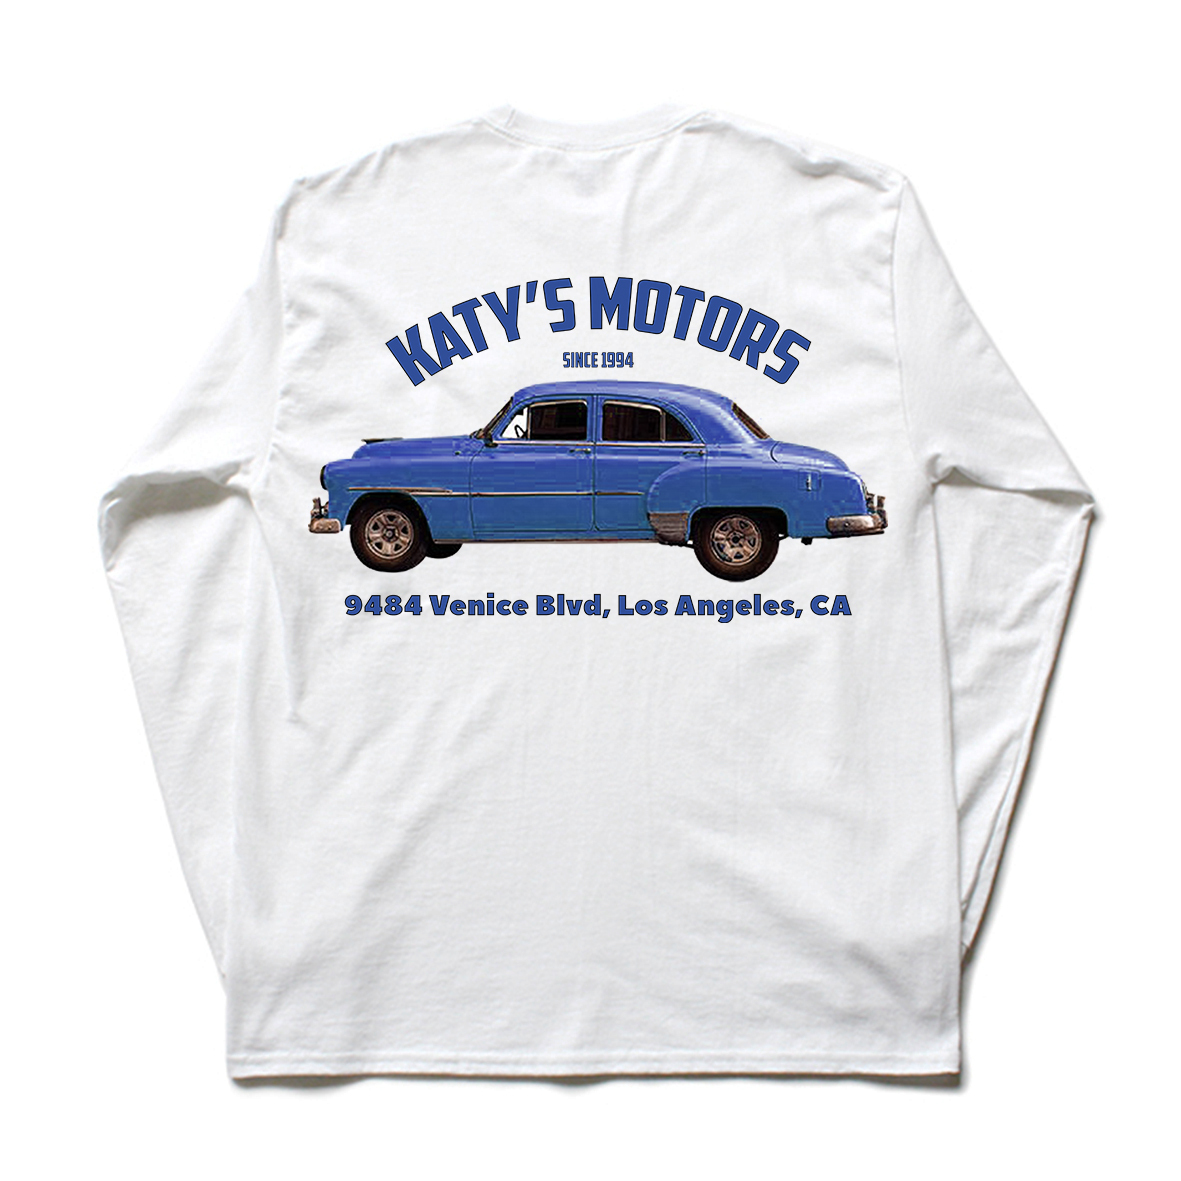 Katy's Motors Souvenir Long Sleeves